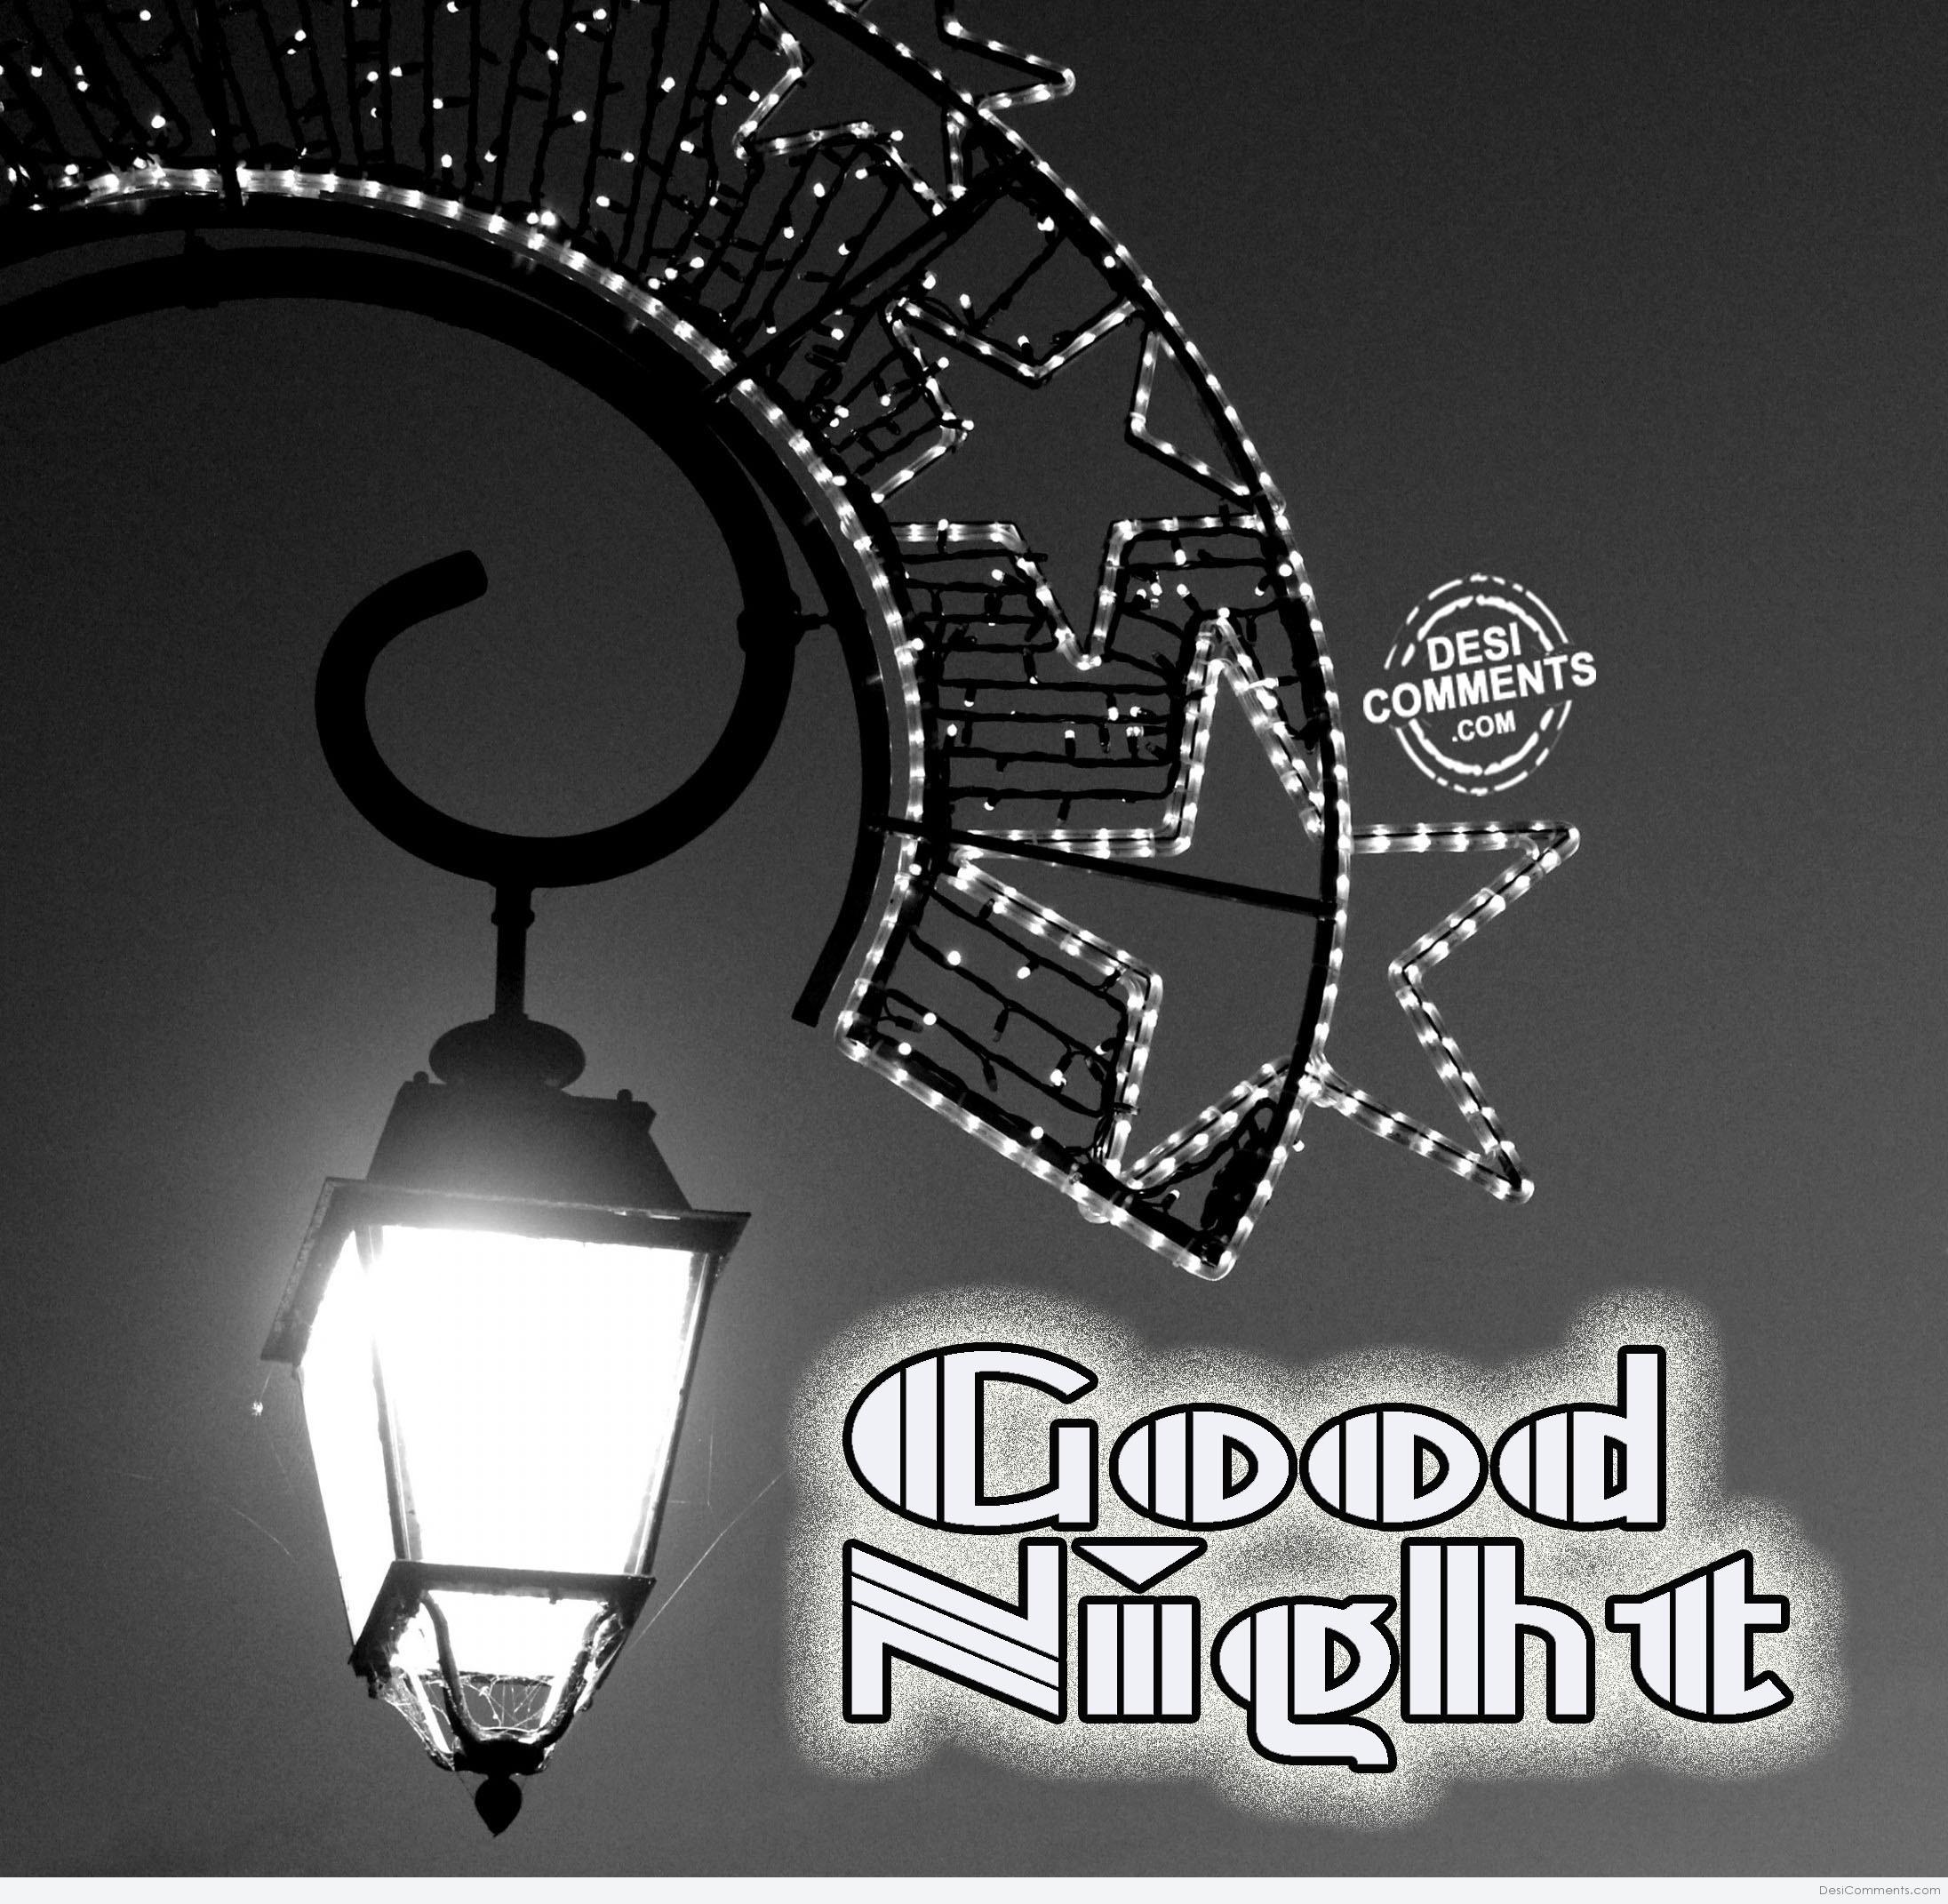 Good Night With Light Lamp Desicomments Com